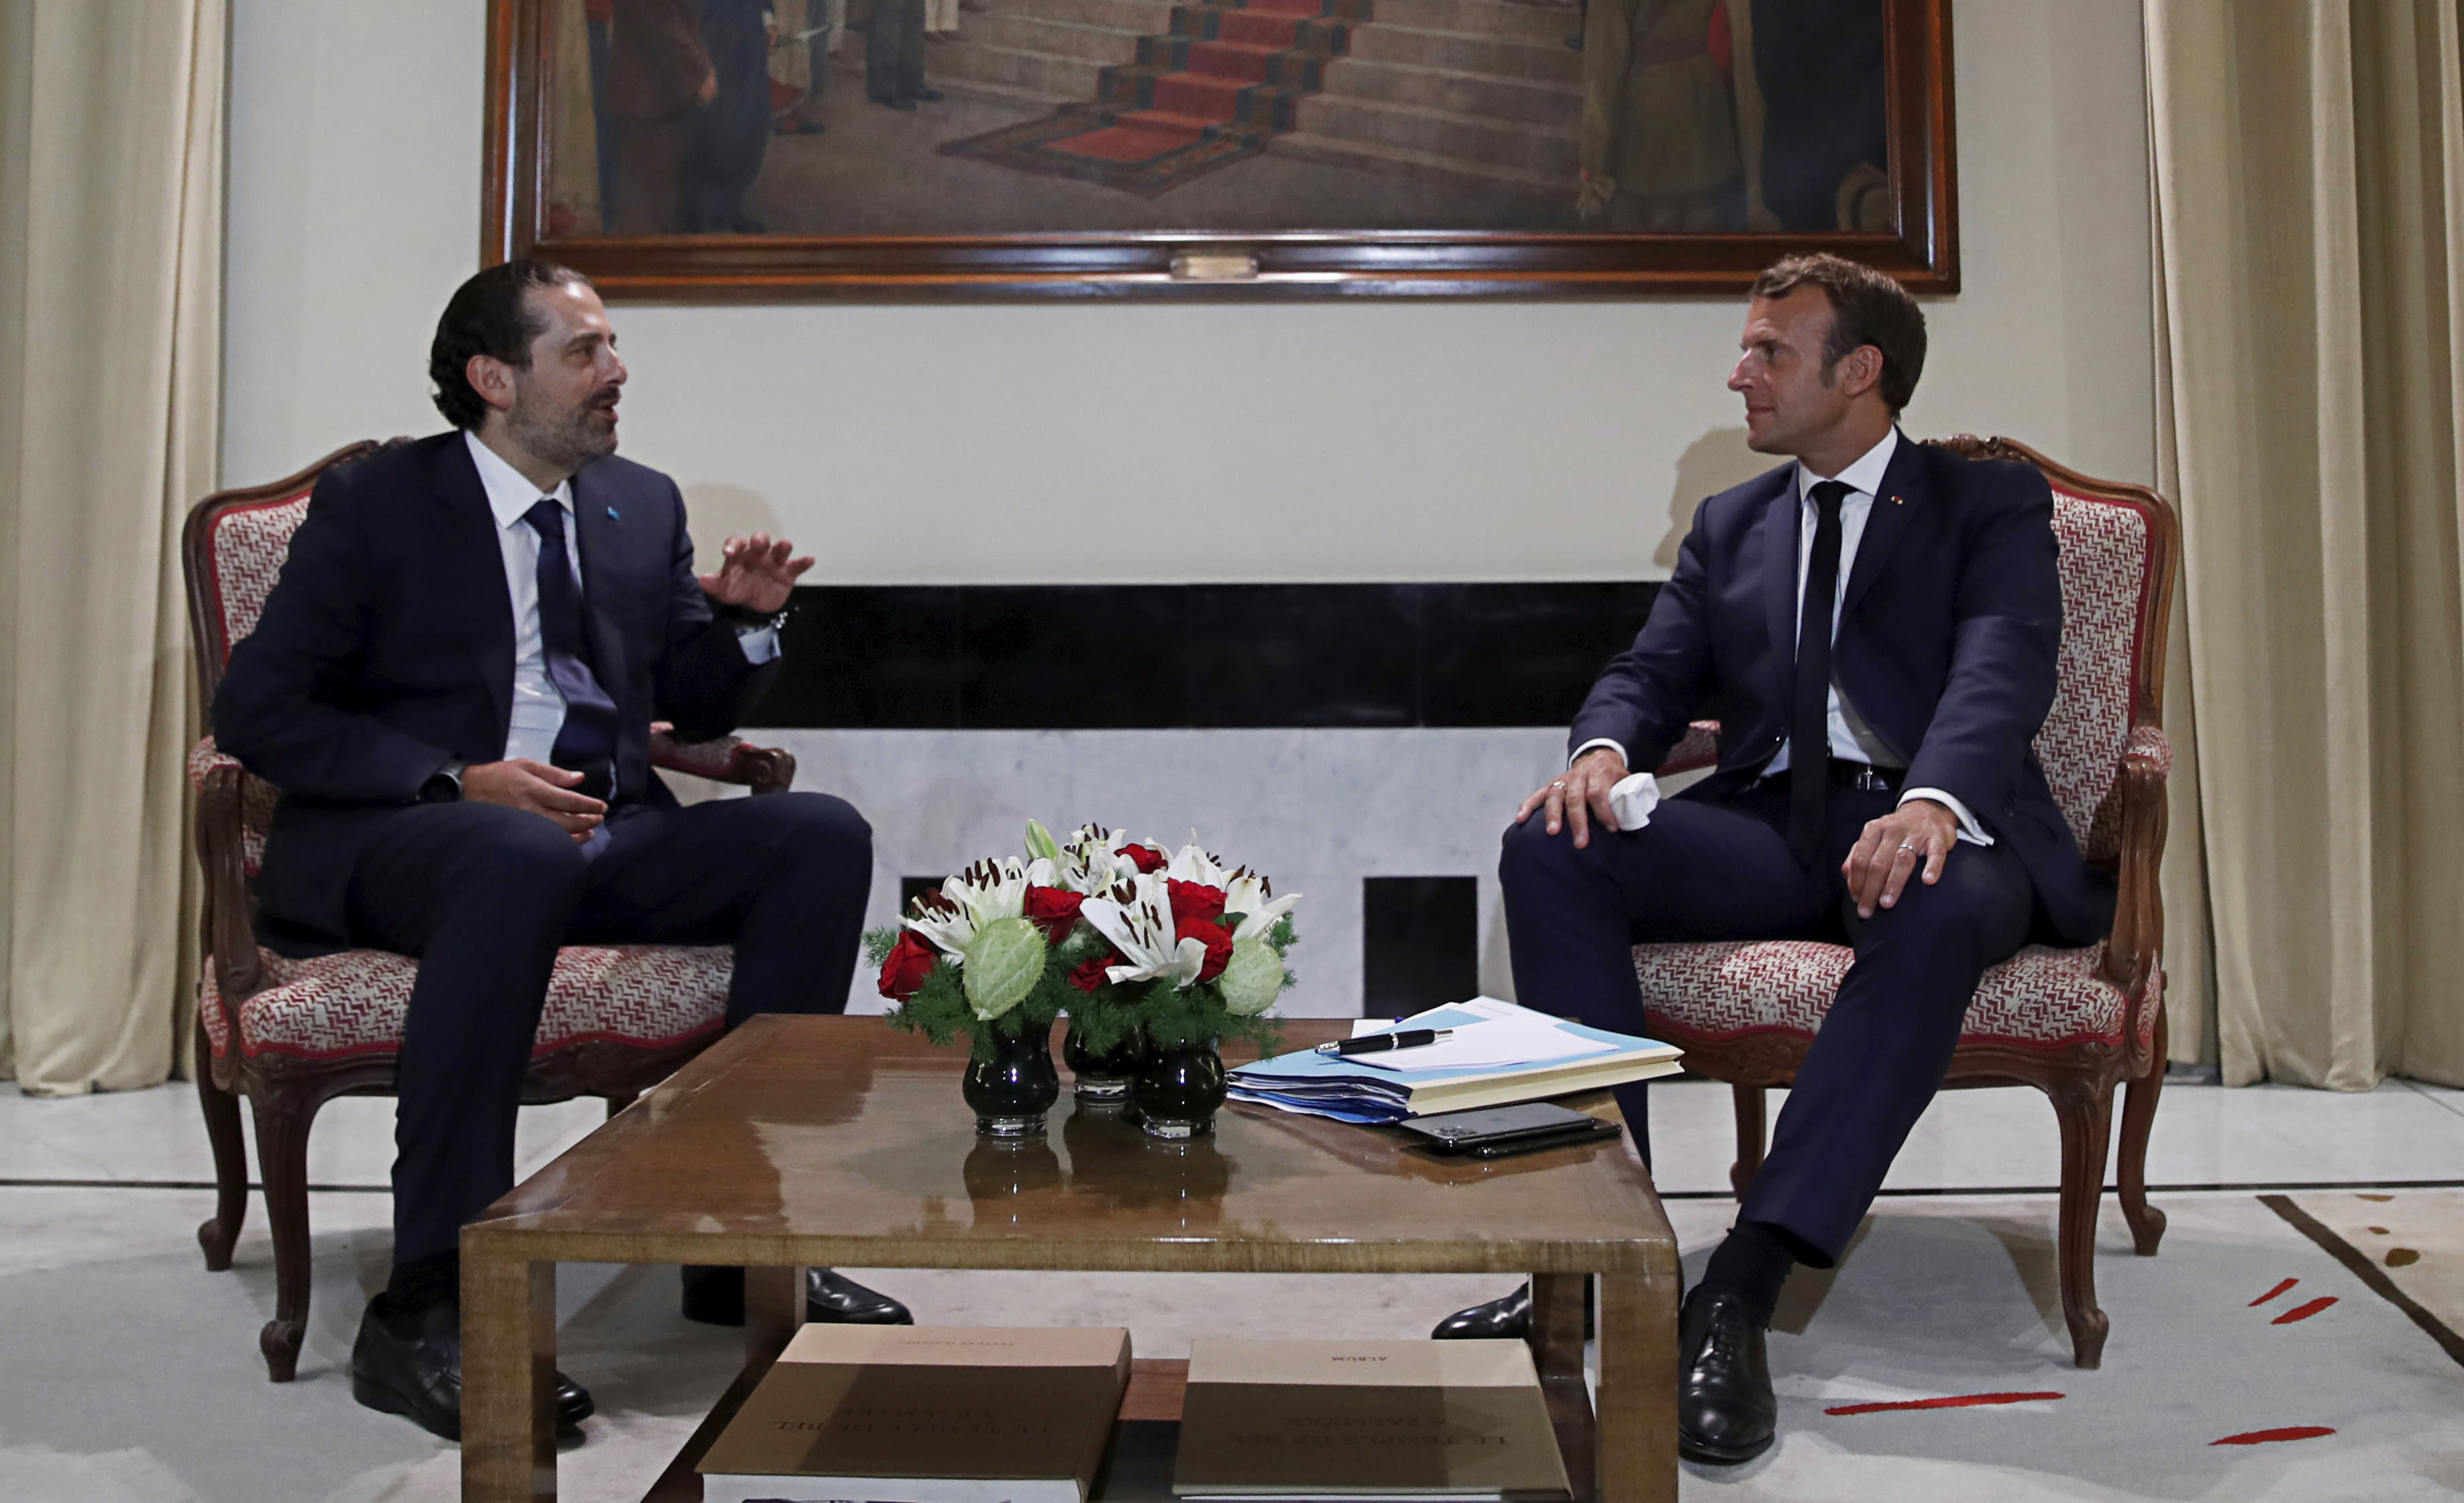 FILE - In this Aug. 31, 2020 file photo, French President Emmanuel Macron, right, meets former Lebanese Prime Minister Saad Hariri, in Beirut, Lebanon. During his visit last week, Macron gave Lebanon's politicians a road map for policy changes and reform, set deadlines for them to take action and told them he'd be back in December to check on progress. It was a hands-on approach that angered some in Lebanon and was welcomed by others. (Gonzalo Fuentes/Pool Photo via AP, File)